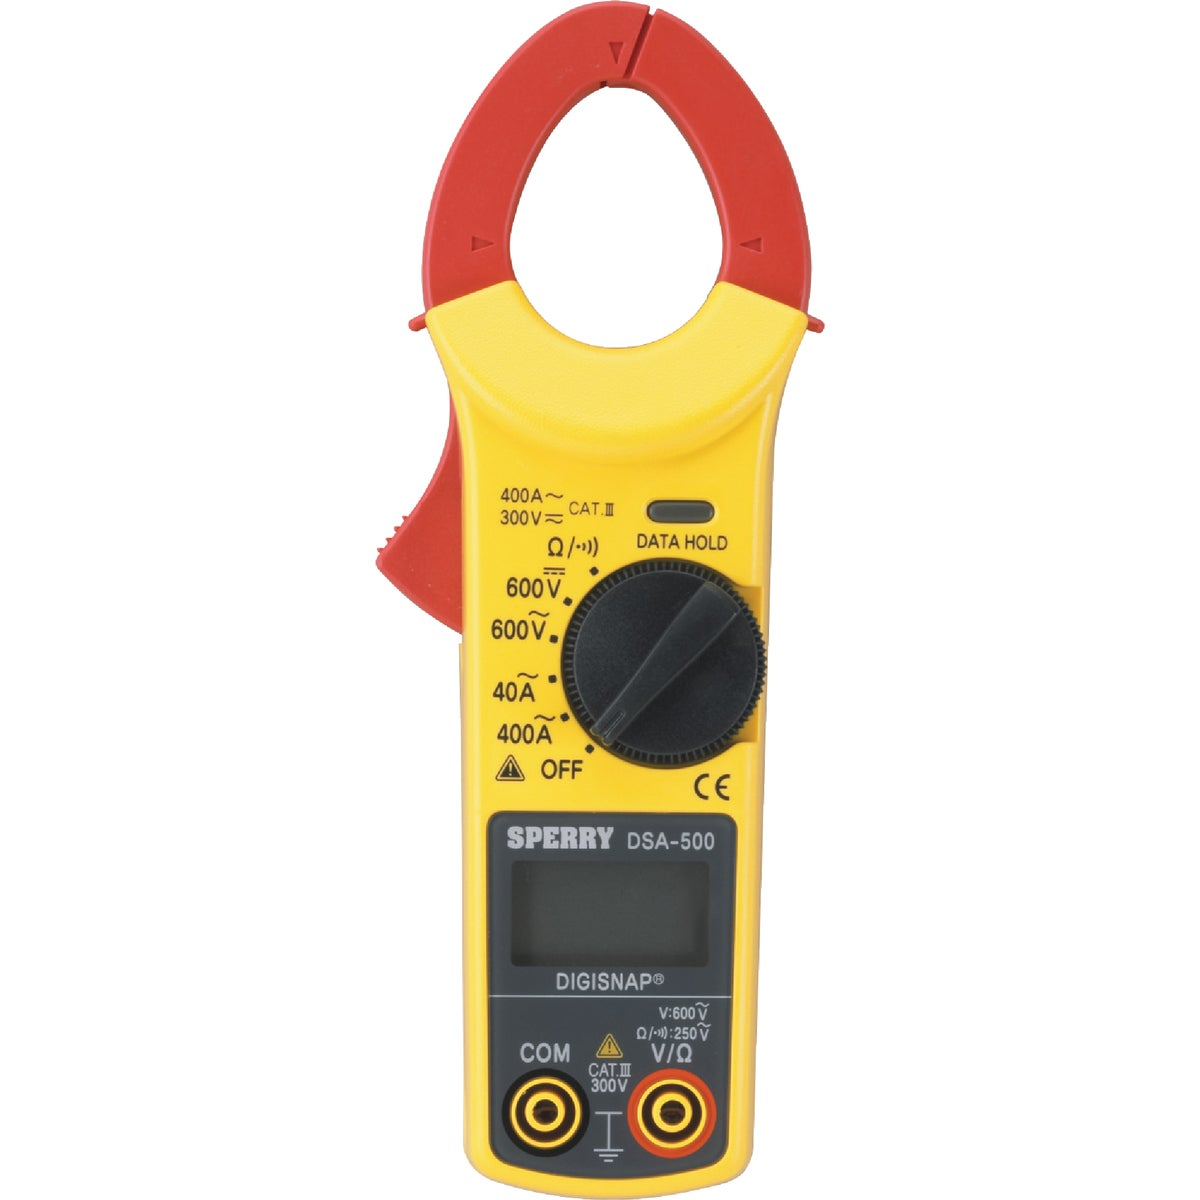 400A DIGITAL CLAMP METER - DSA500A by G B Electrical Inc